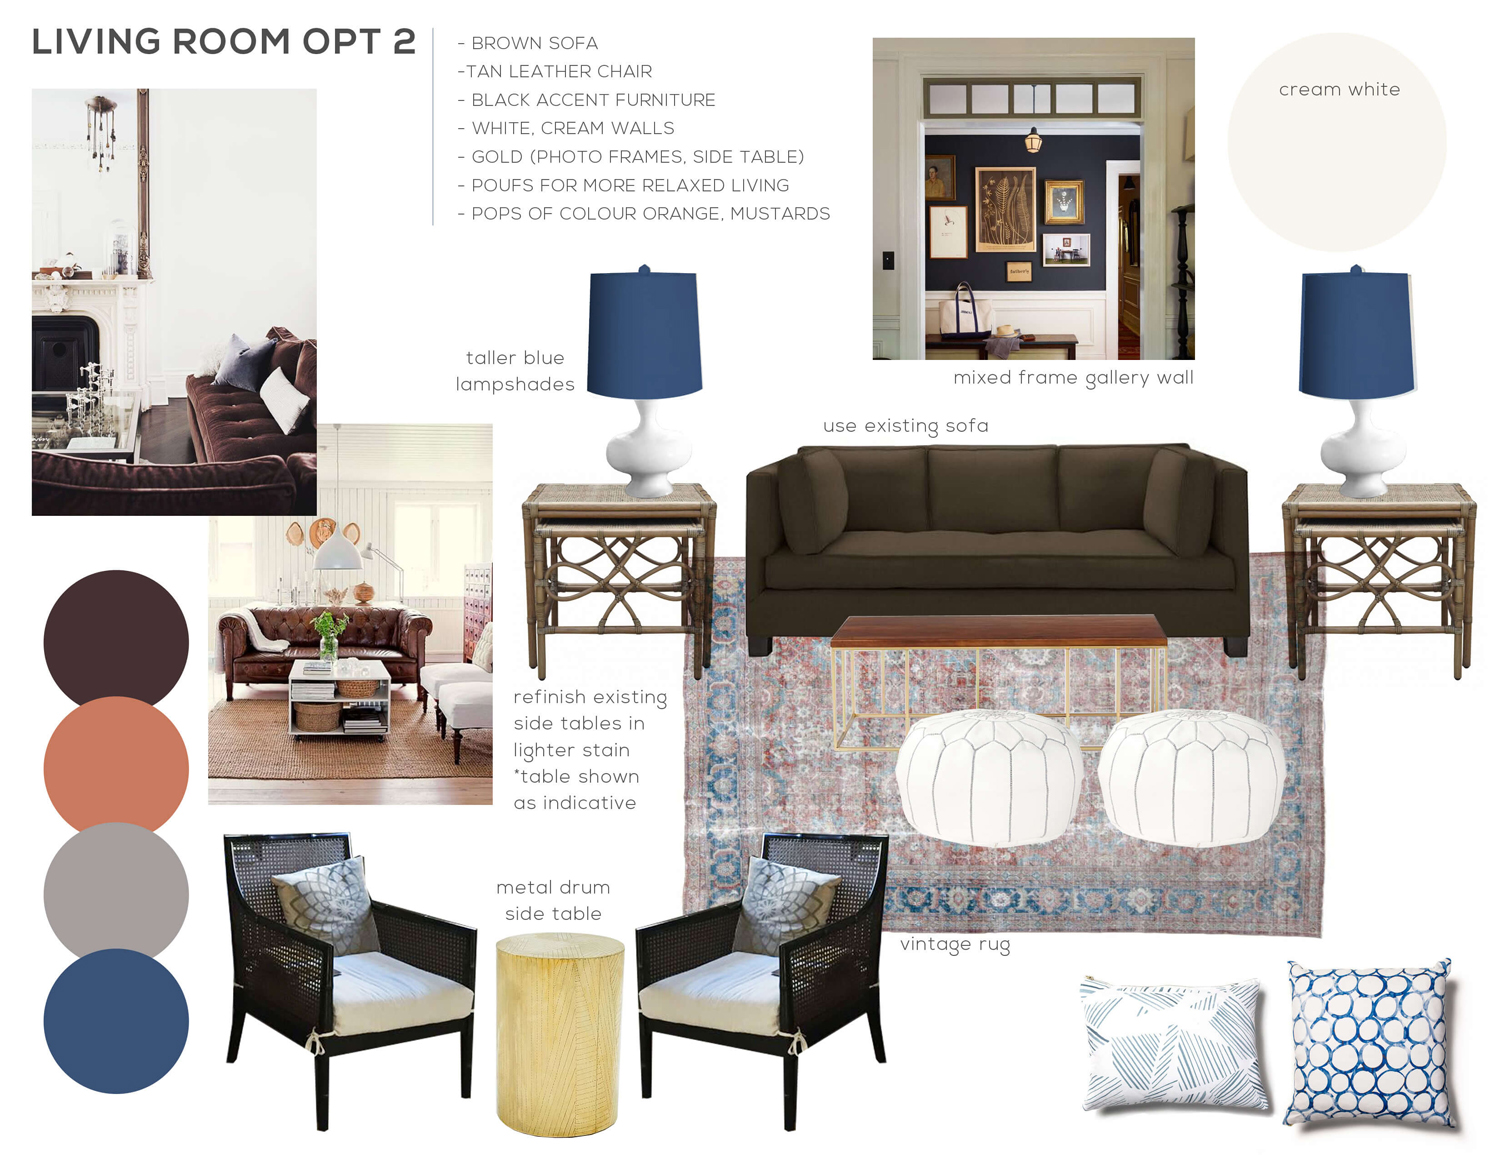 GINNY_MACDONALD_SILVER_LAKE_HILLS_LIVING_ROOM_SECOND_MOODBOARD.jpg